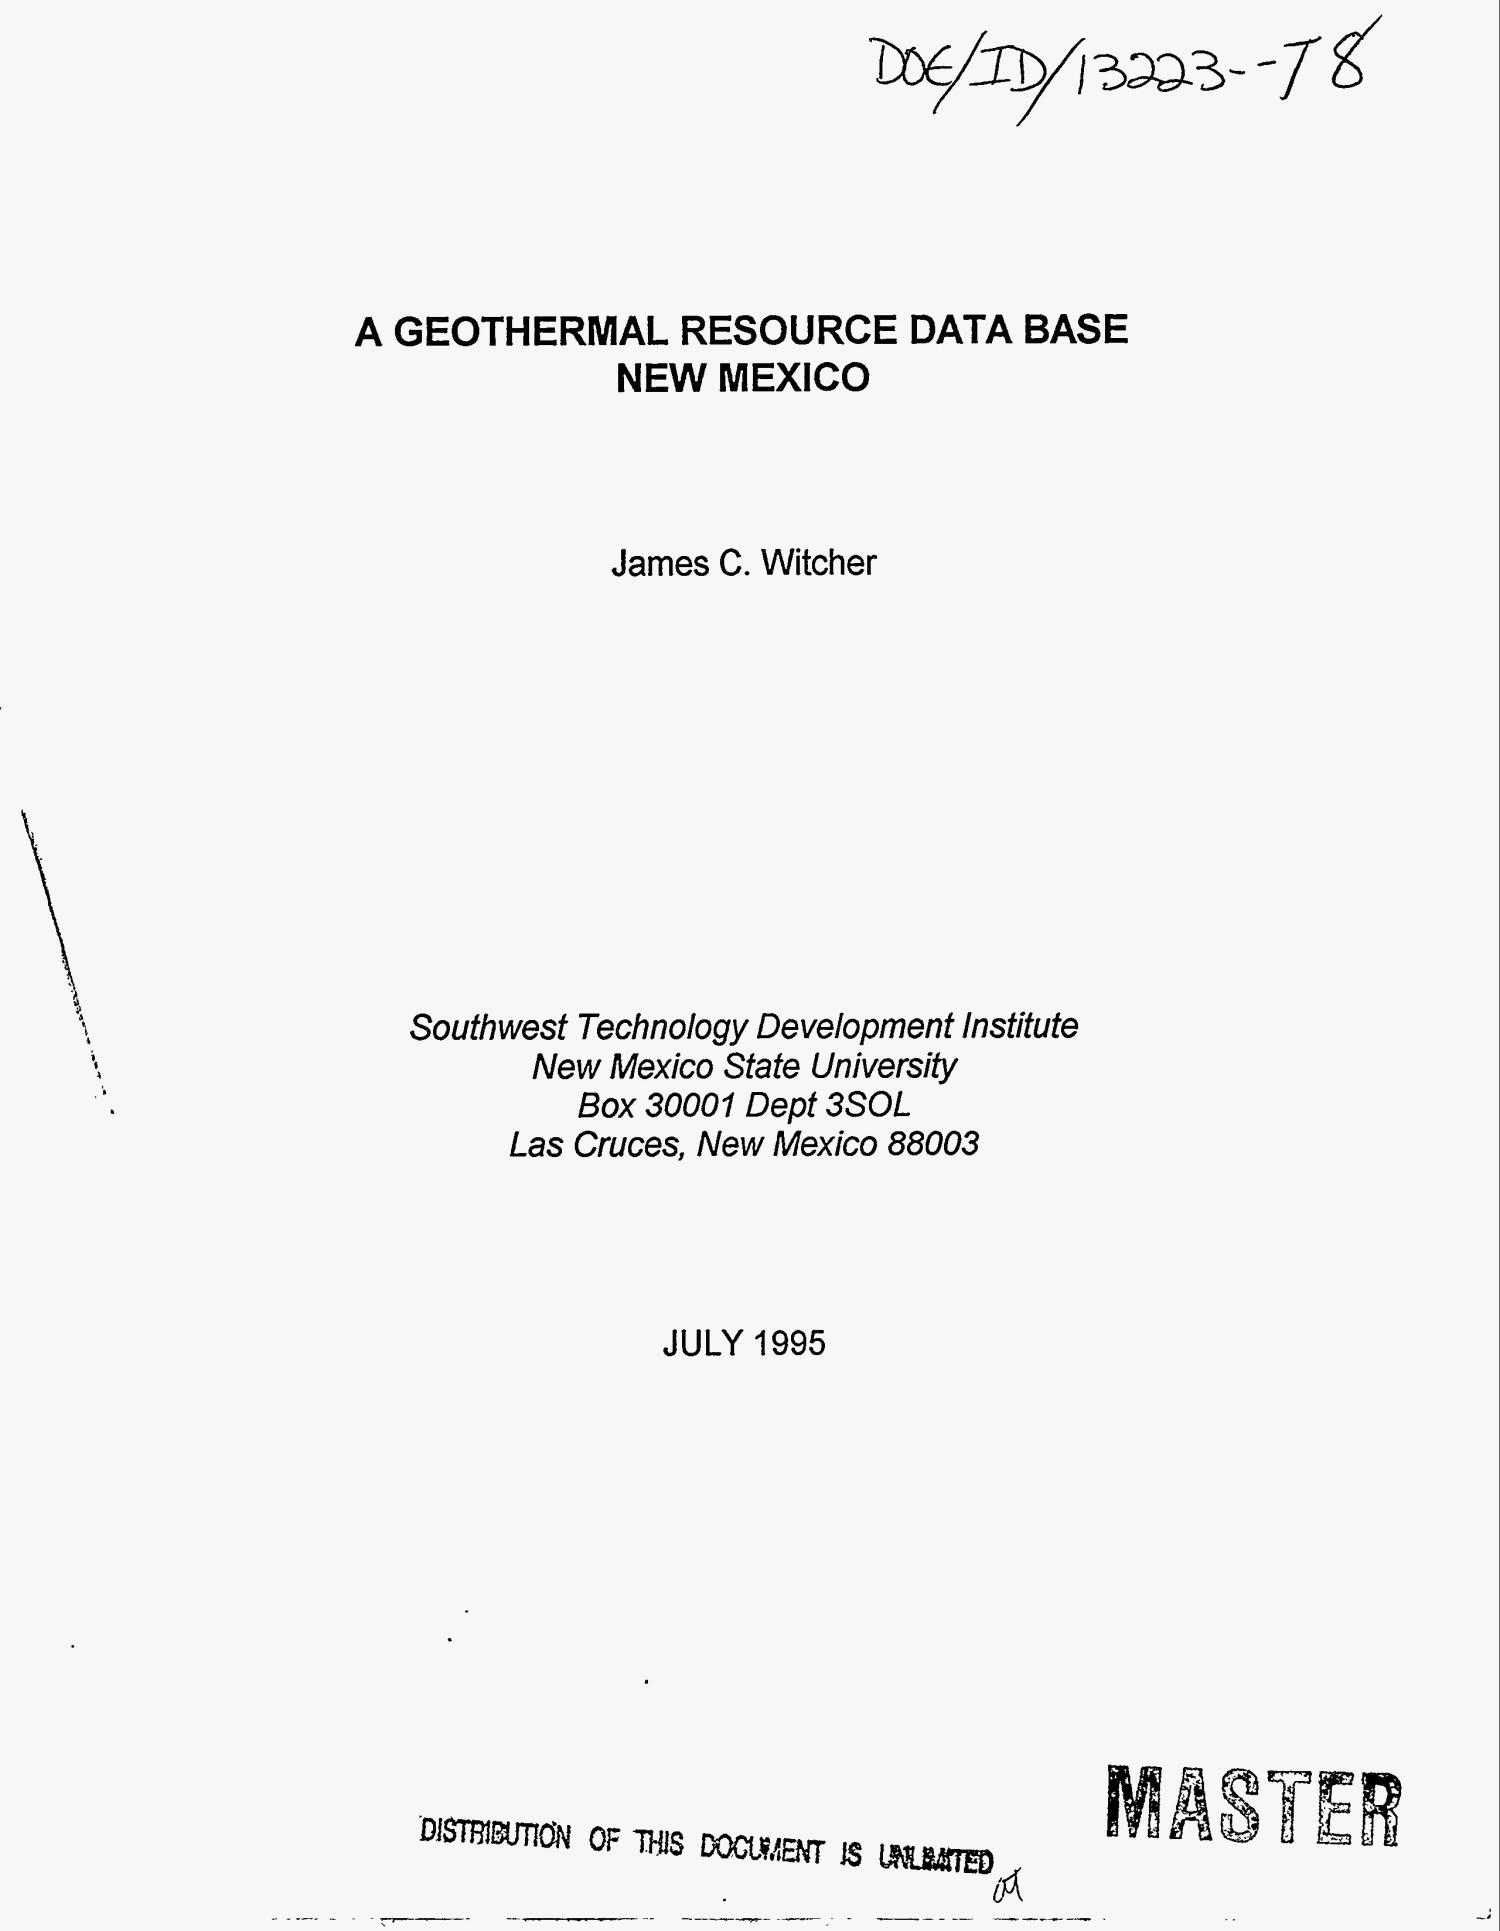 A geothermal resource data base: New Mexico                                                                                                      [Sequence #]: 1 of 94